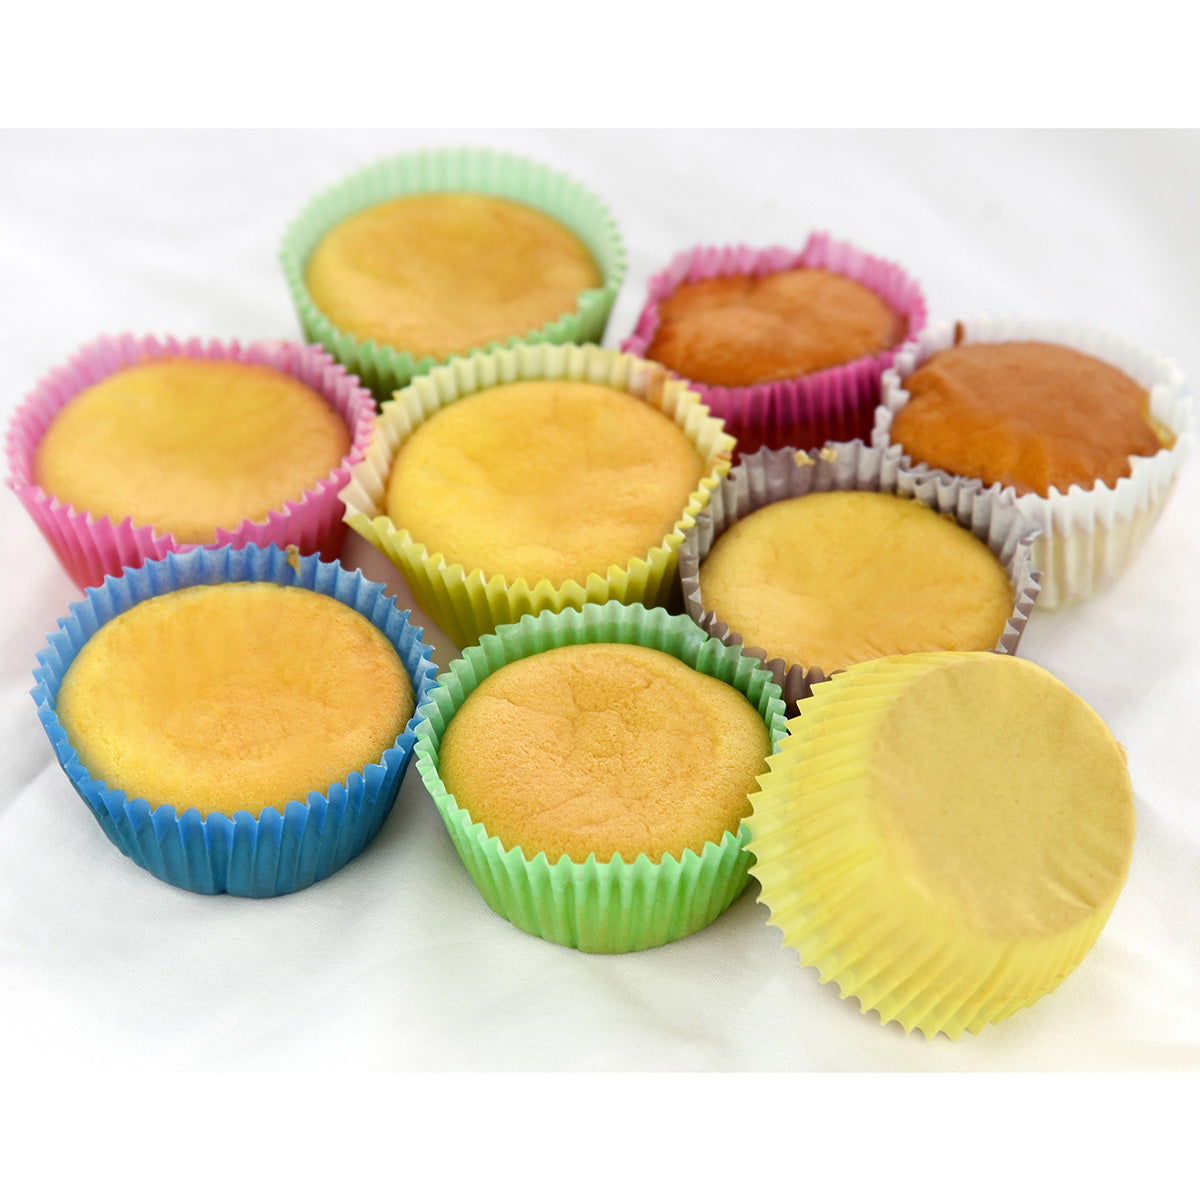 FiveSeasonStuff Pack of 100 Cupcake Muffin Cases/Standard Baking Paper Cups Wraps Liners for Wedding Christmas Birthday Shower Party Carnival Holiday Celebration